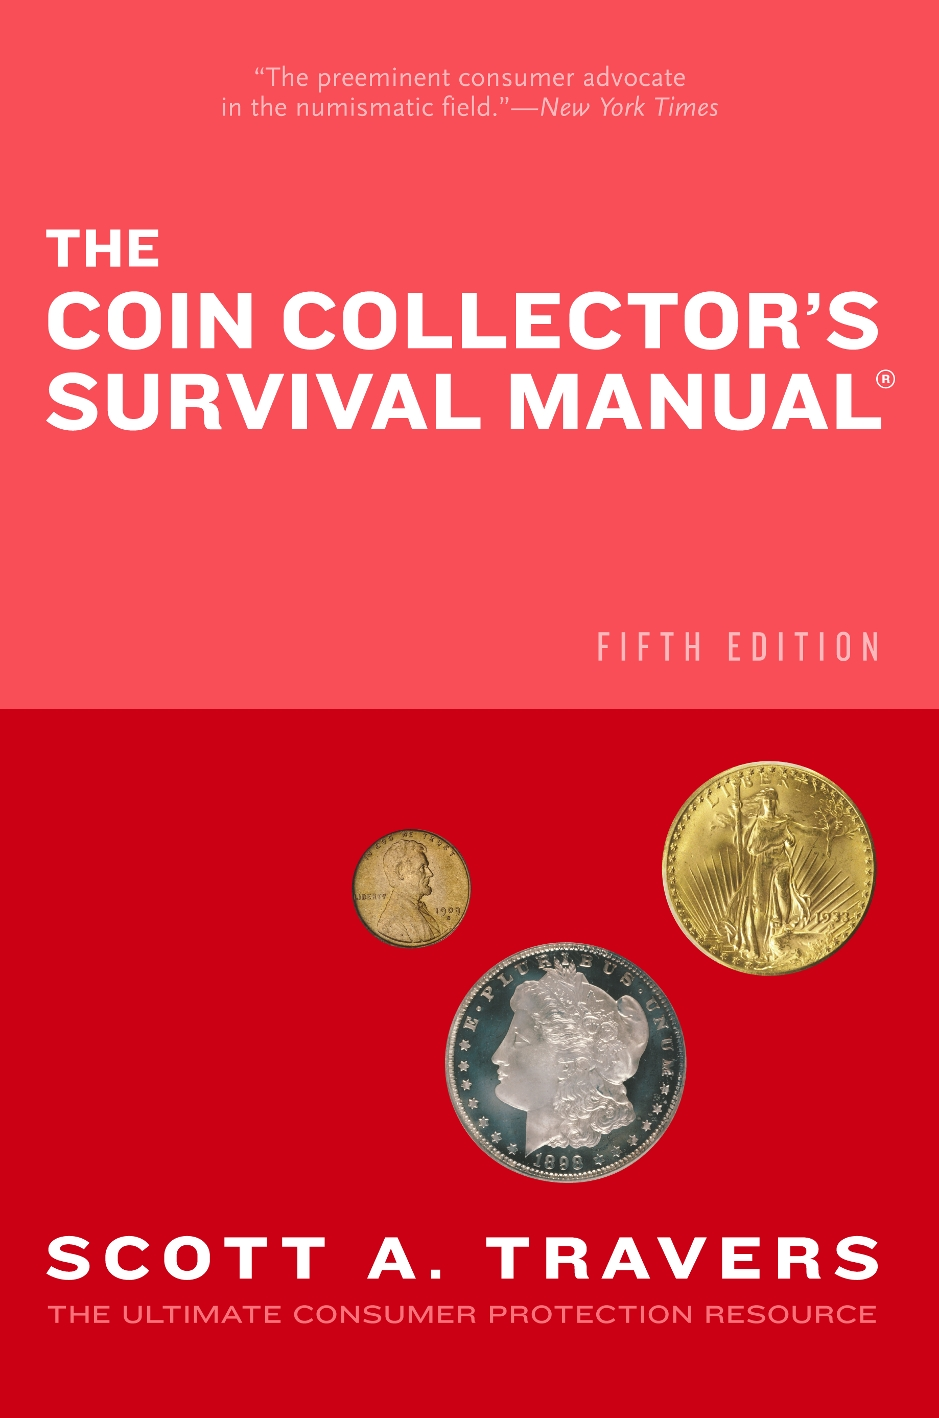 The Coin Collector's Survival Manual®, Fifth Edition, SoftwareRandom House  Information Group granted a license to Carlisle Development for software  based ...